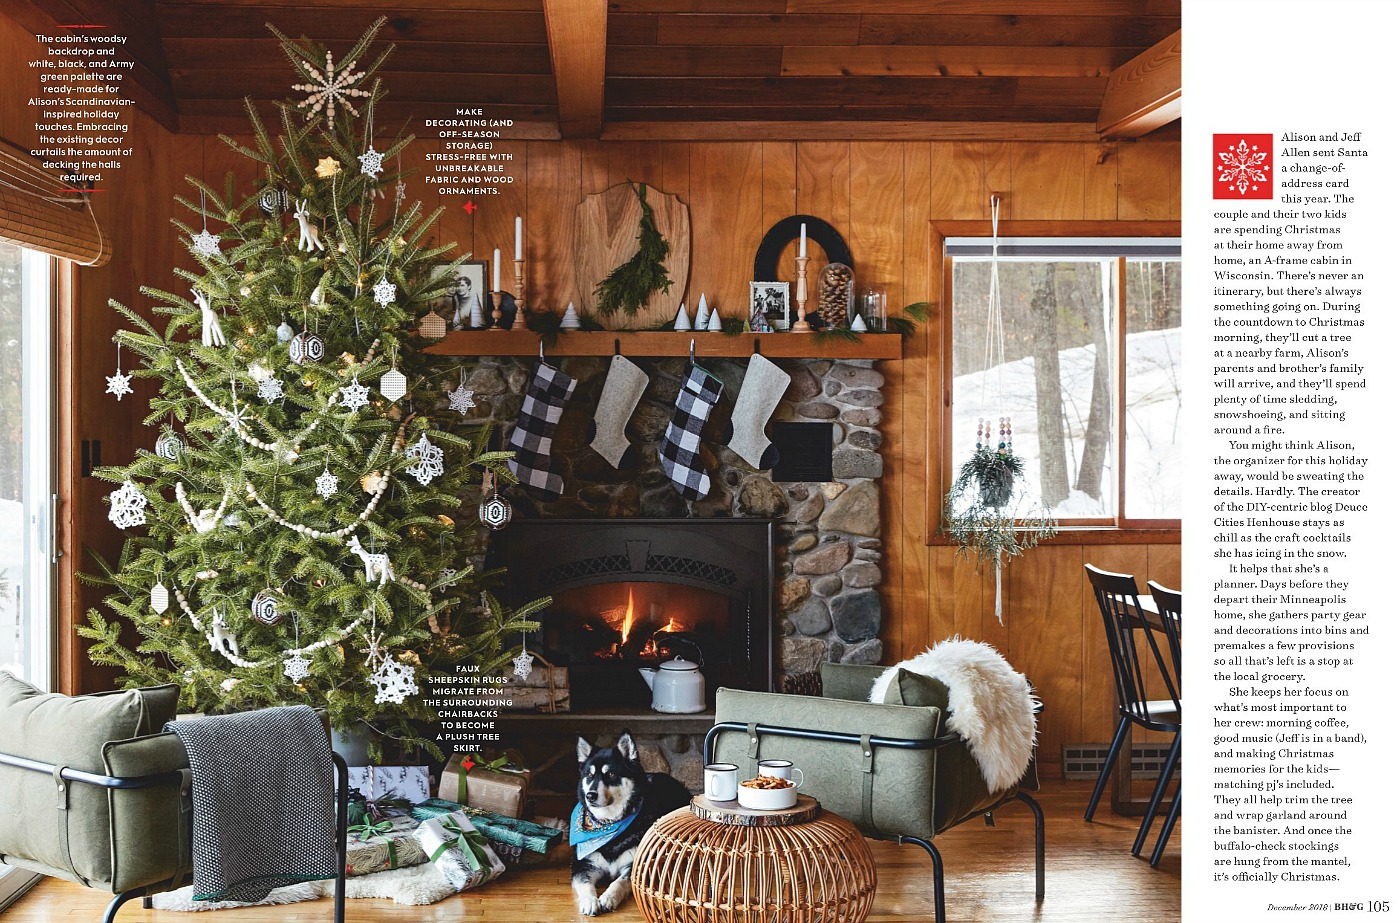 Christmas cabin decor by Alison Allen in Better Homes and Gardens magazine